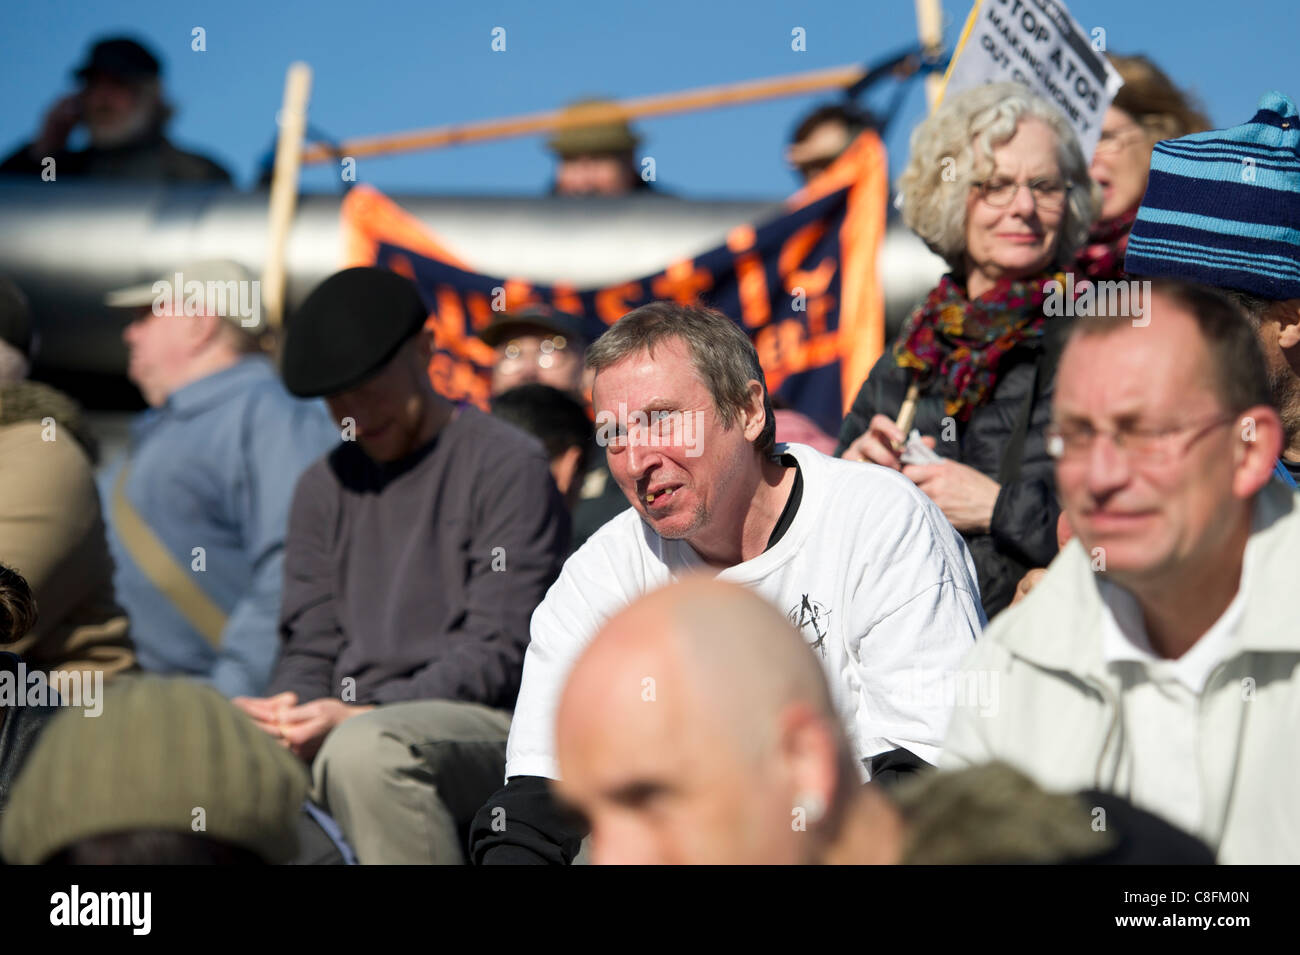 Saturday 22nd October 2011, Queens Way, London. Member of the publiclistens intently to the speakers protesting - Stock Image